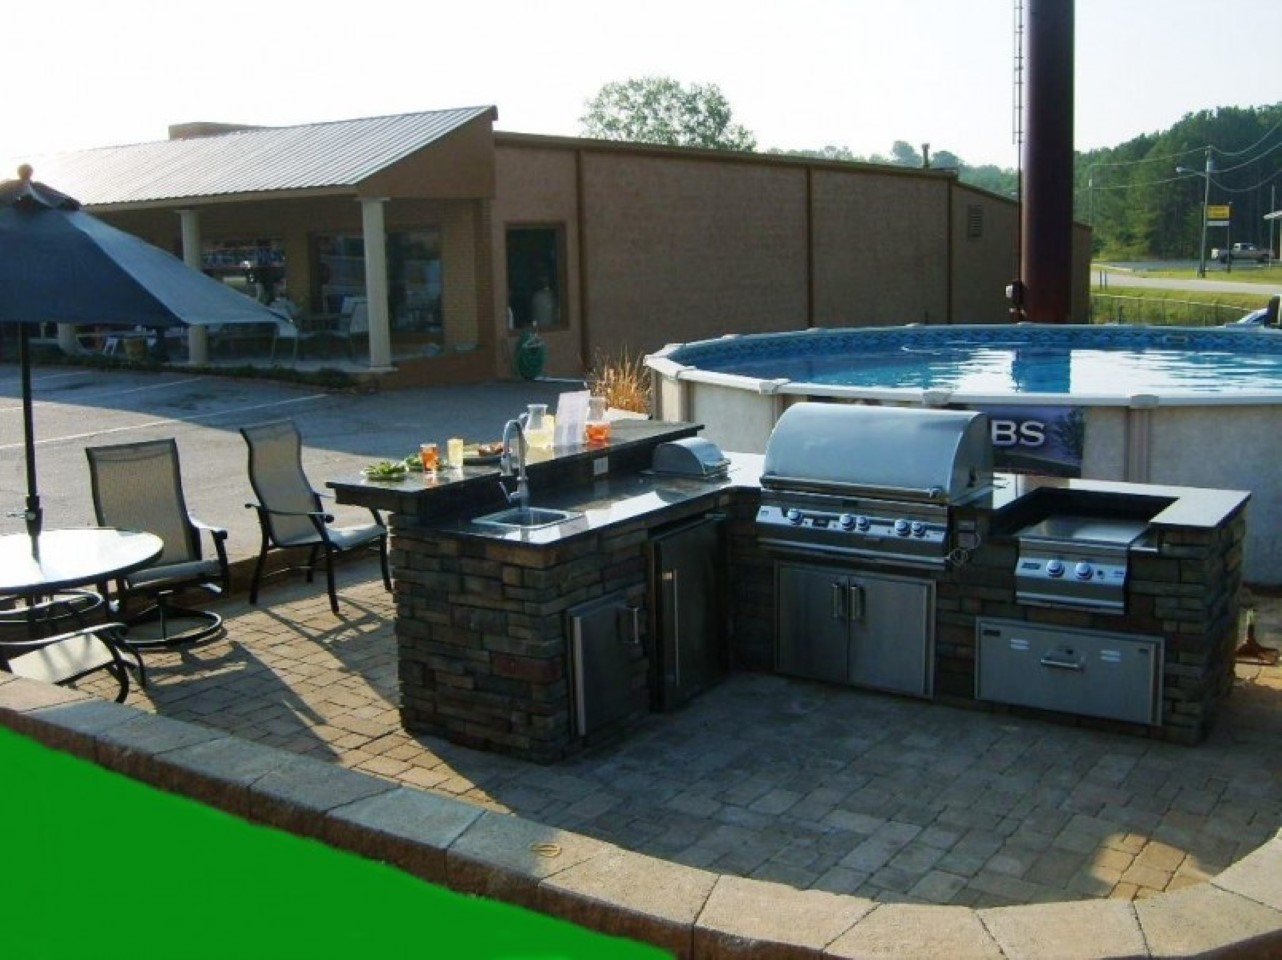 modern-round-above-ground-pool-design-by-outstanding-outdoor-kitchen-plus-metal-chairs-and-stainless-steel-grill